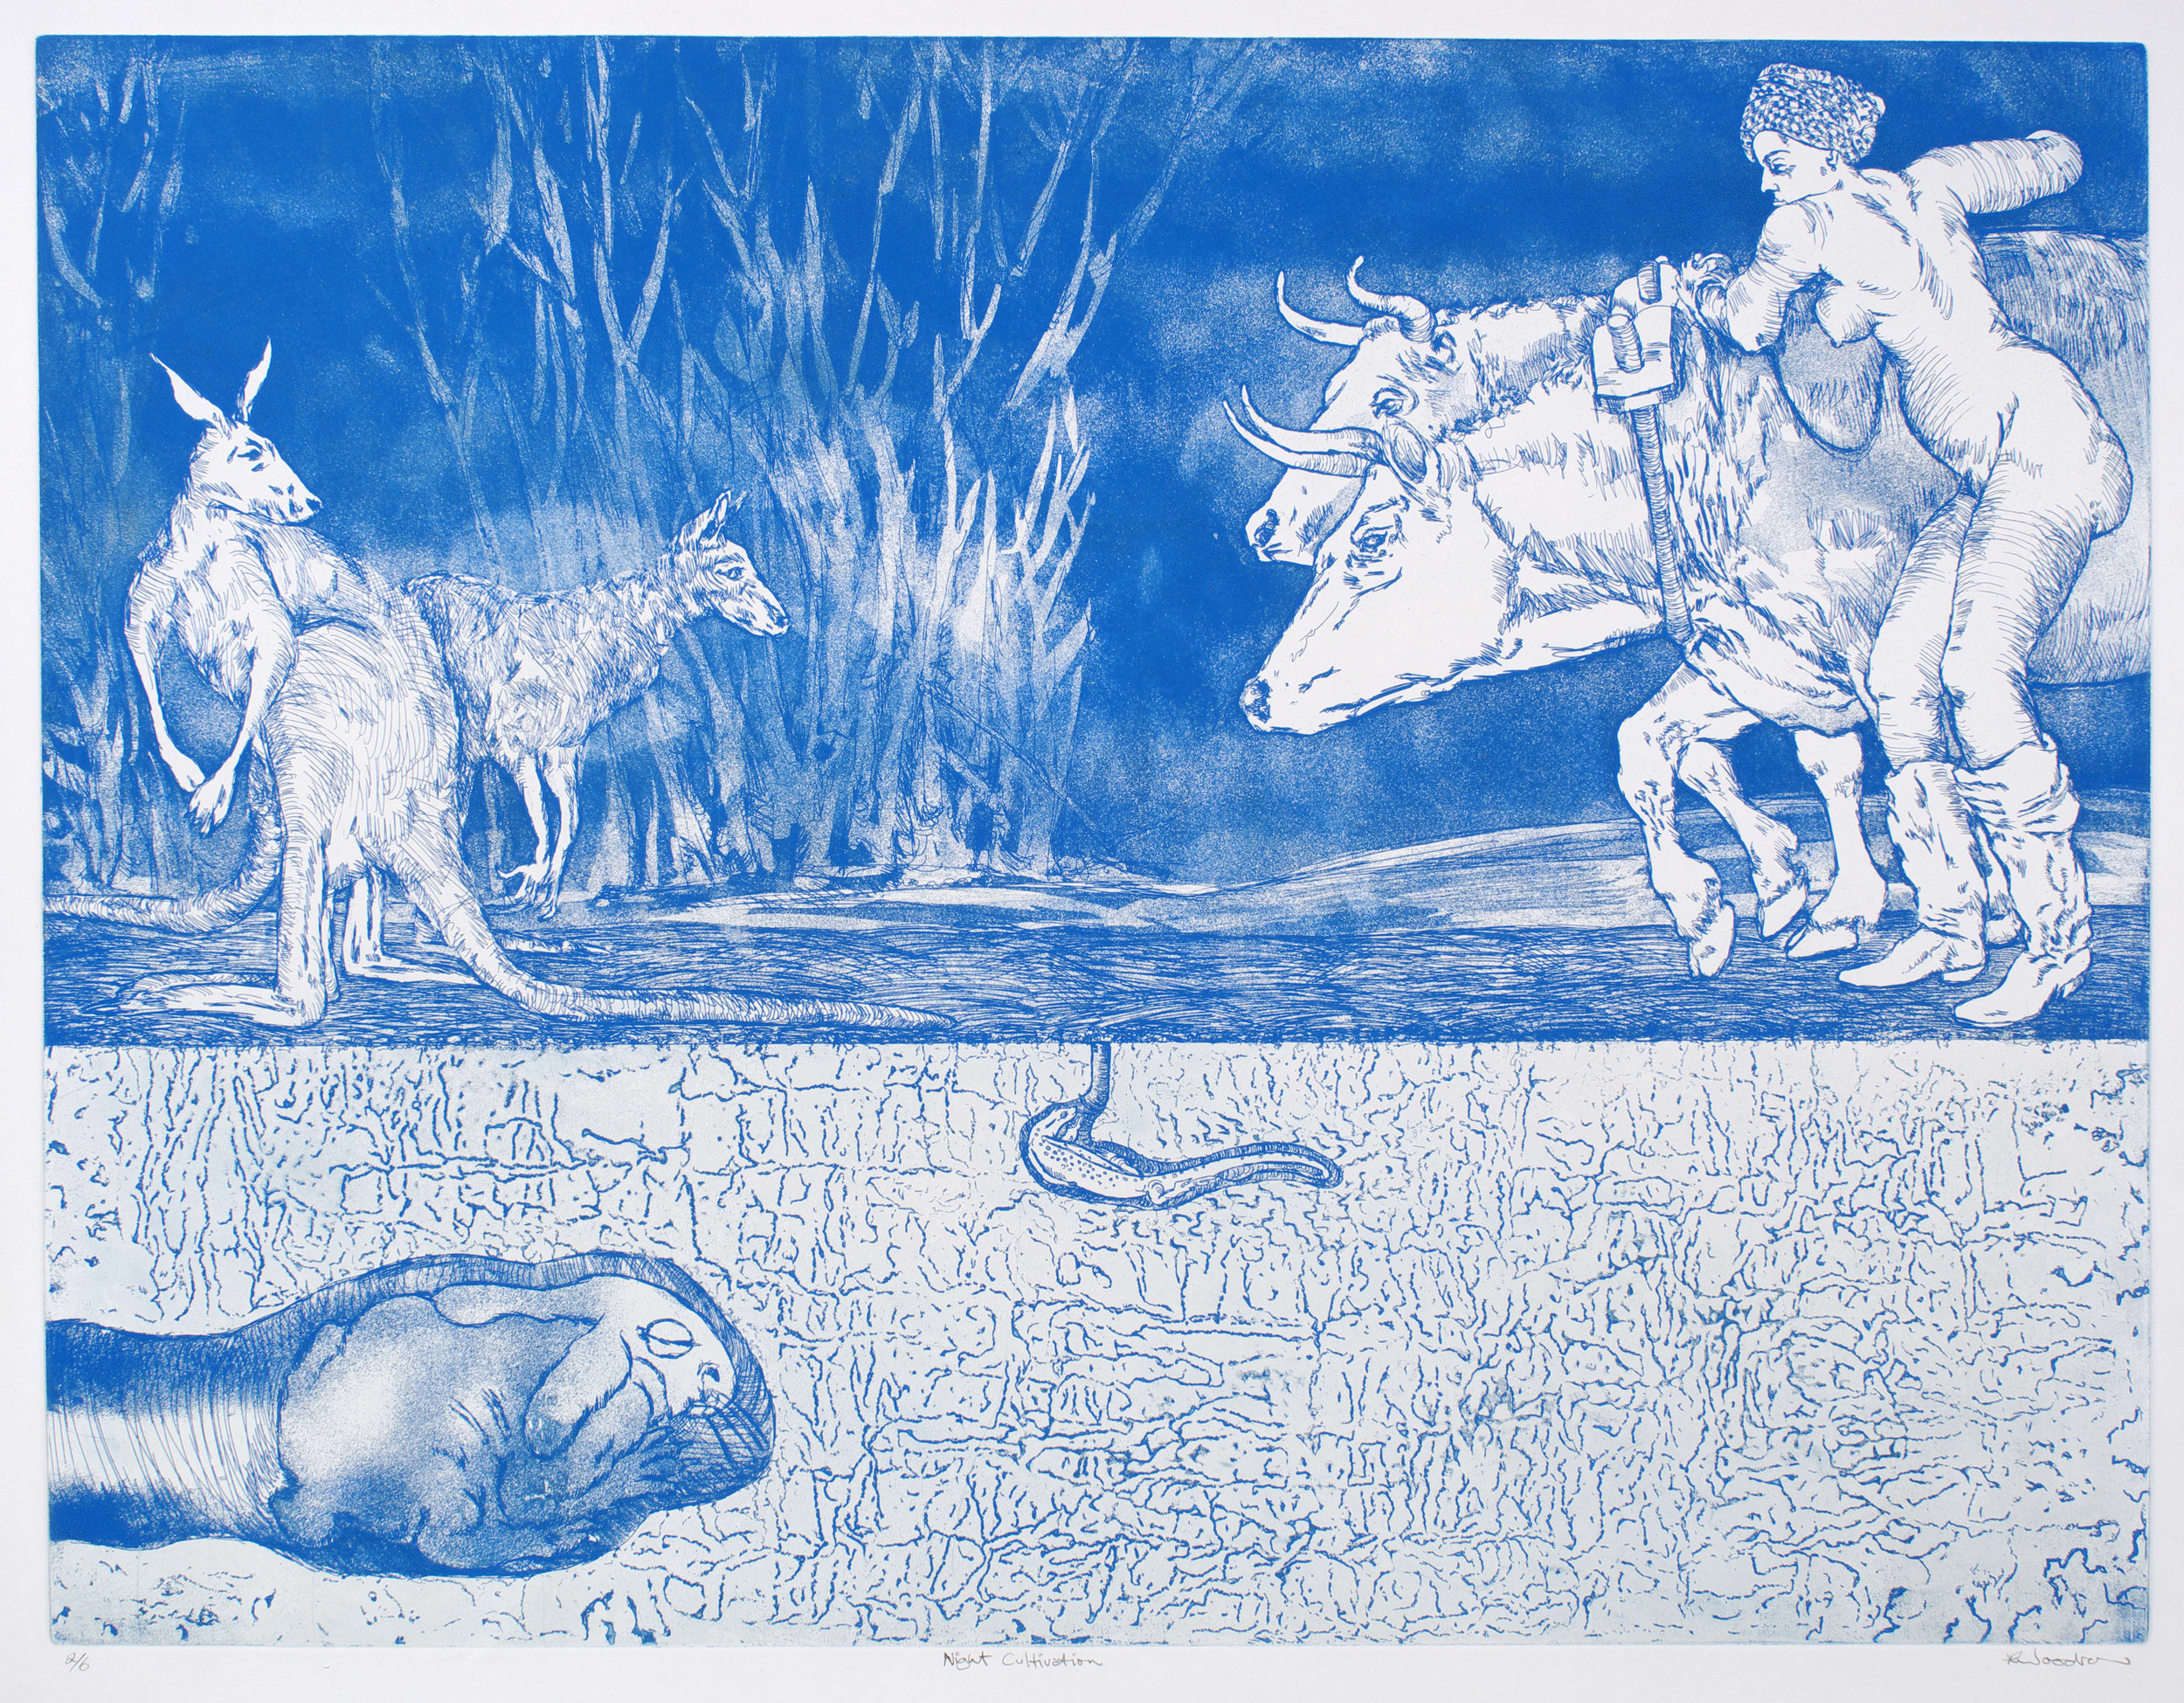 Night Cultivation   etching and aquatint (copper plate) 590 x 795 mm. 2/6 in this edition.